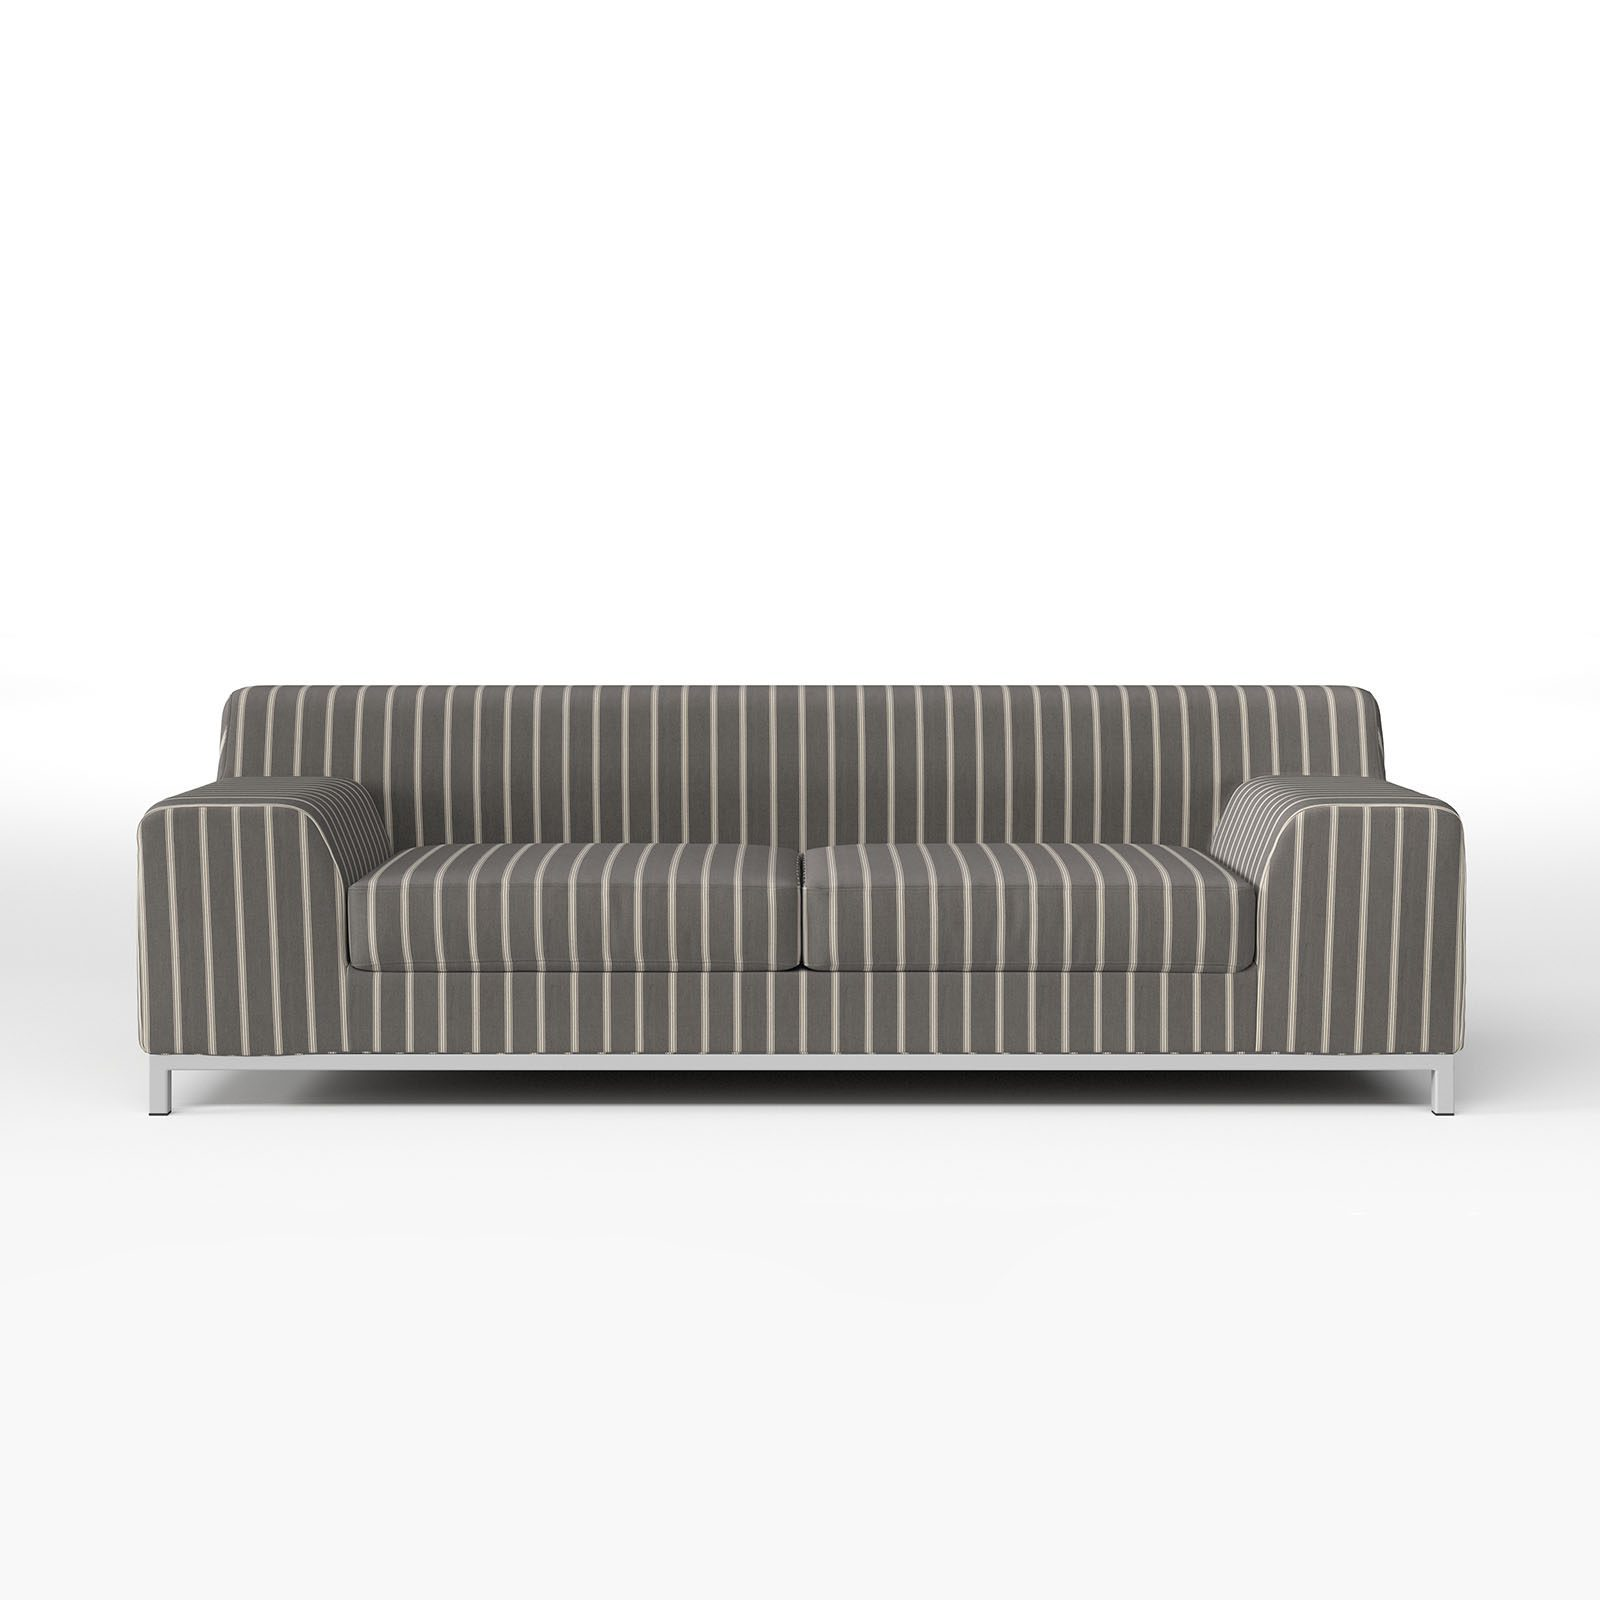 Ikea Kramfors Discontinued, but Comfort Works has got you covered!